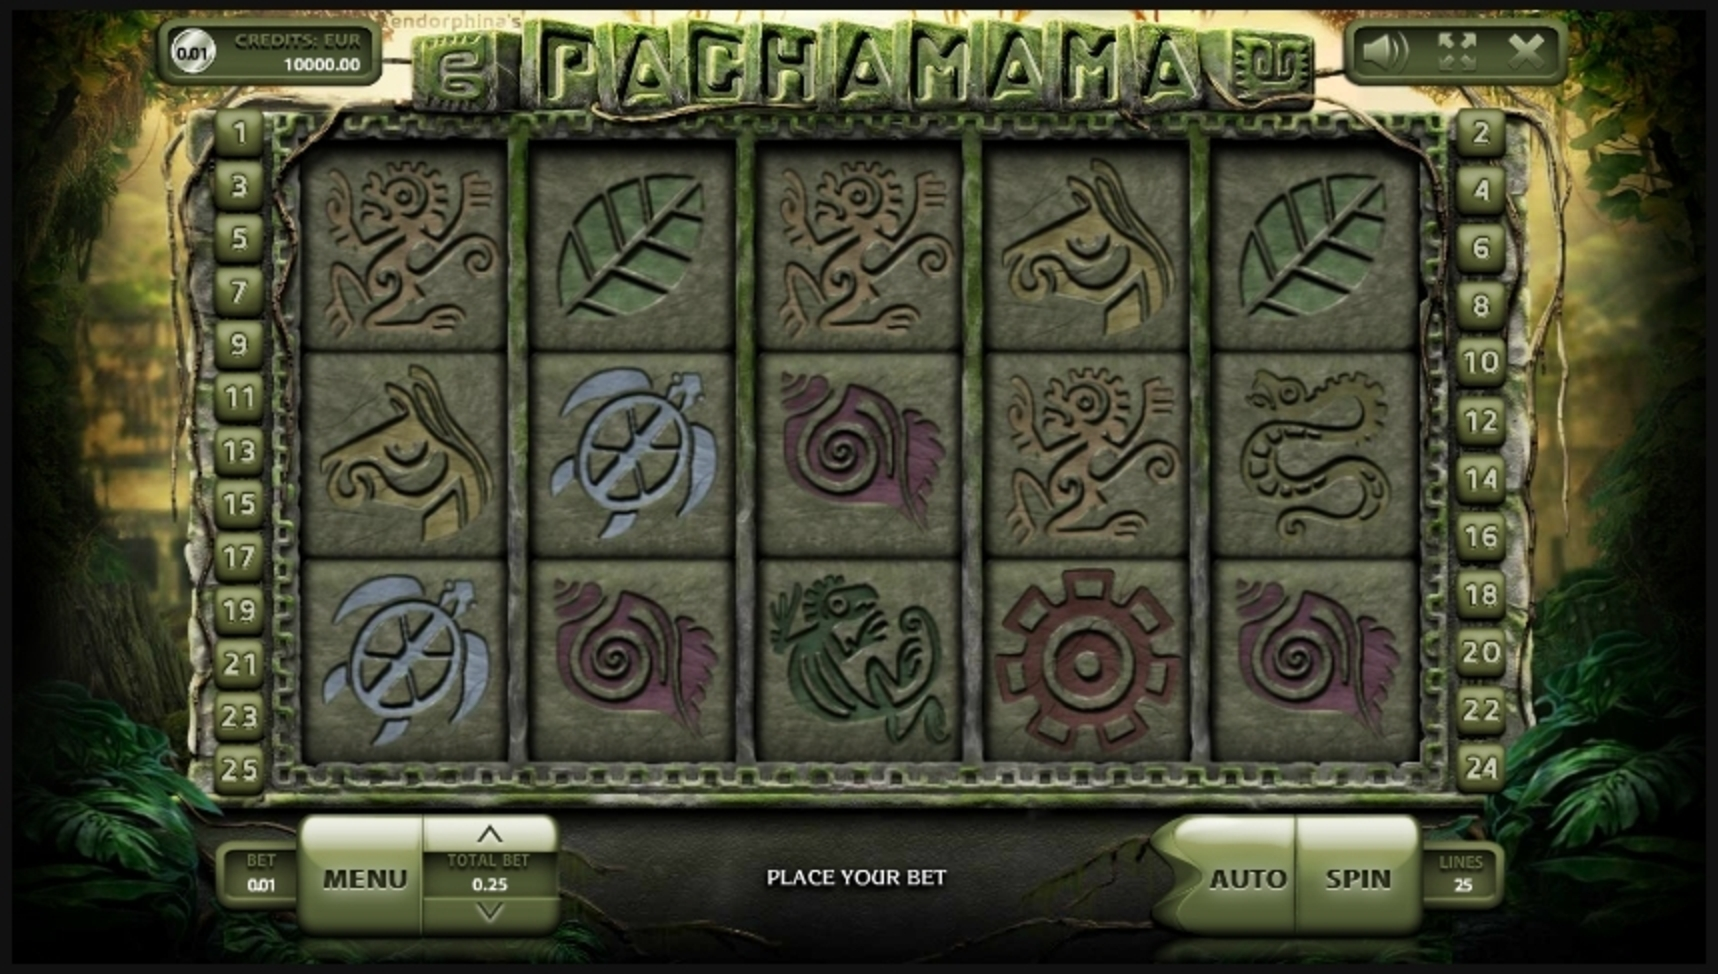 Reels in Pachamama Slot Game by Endorphina